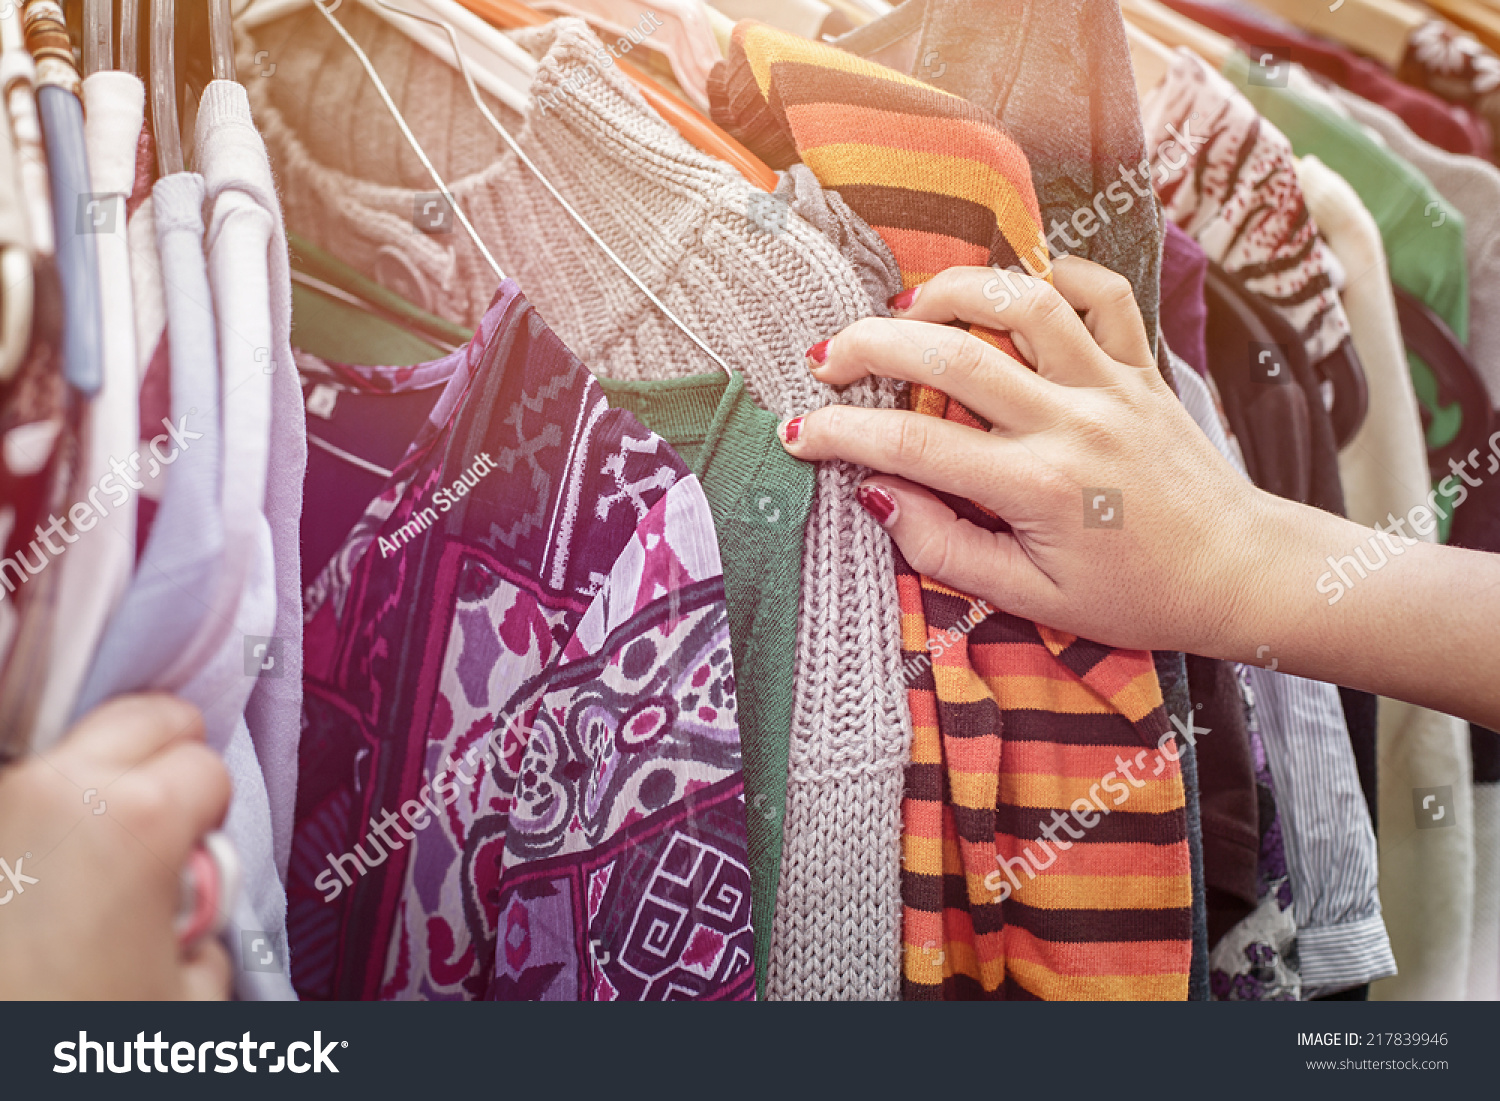 Browsing Through Clothing